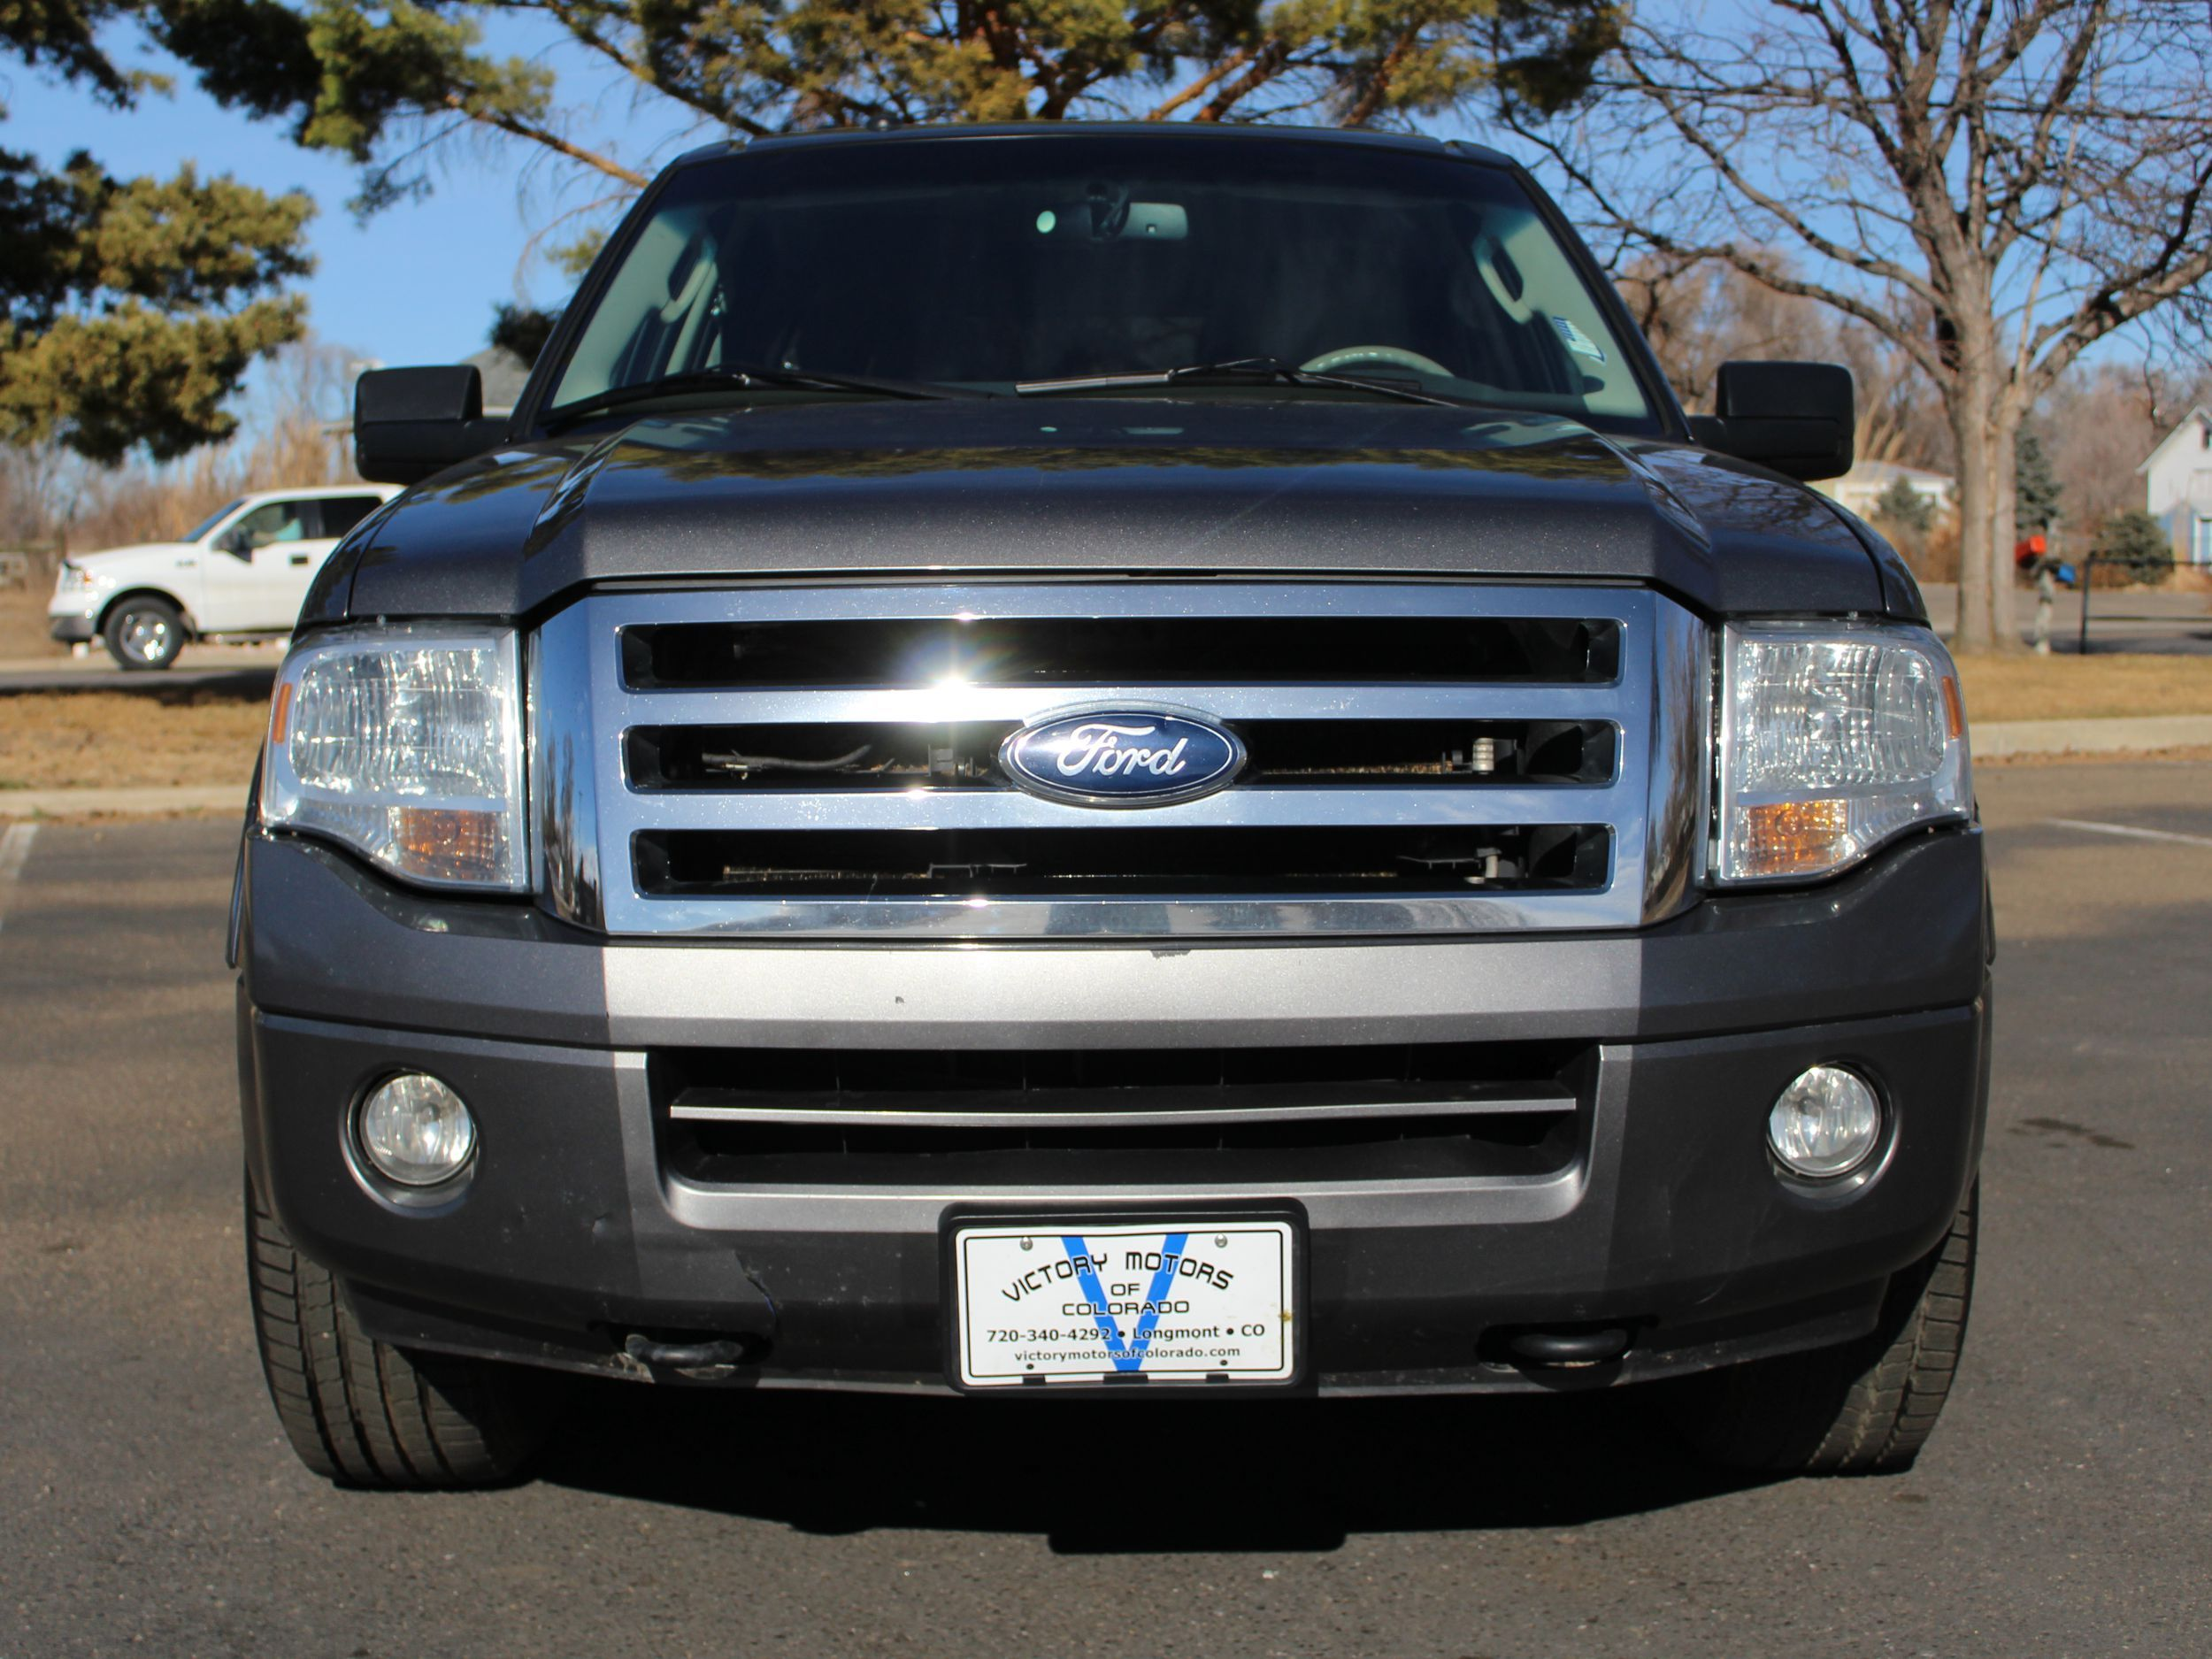 sale from expedition used large for wayne fort savings ford in best